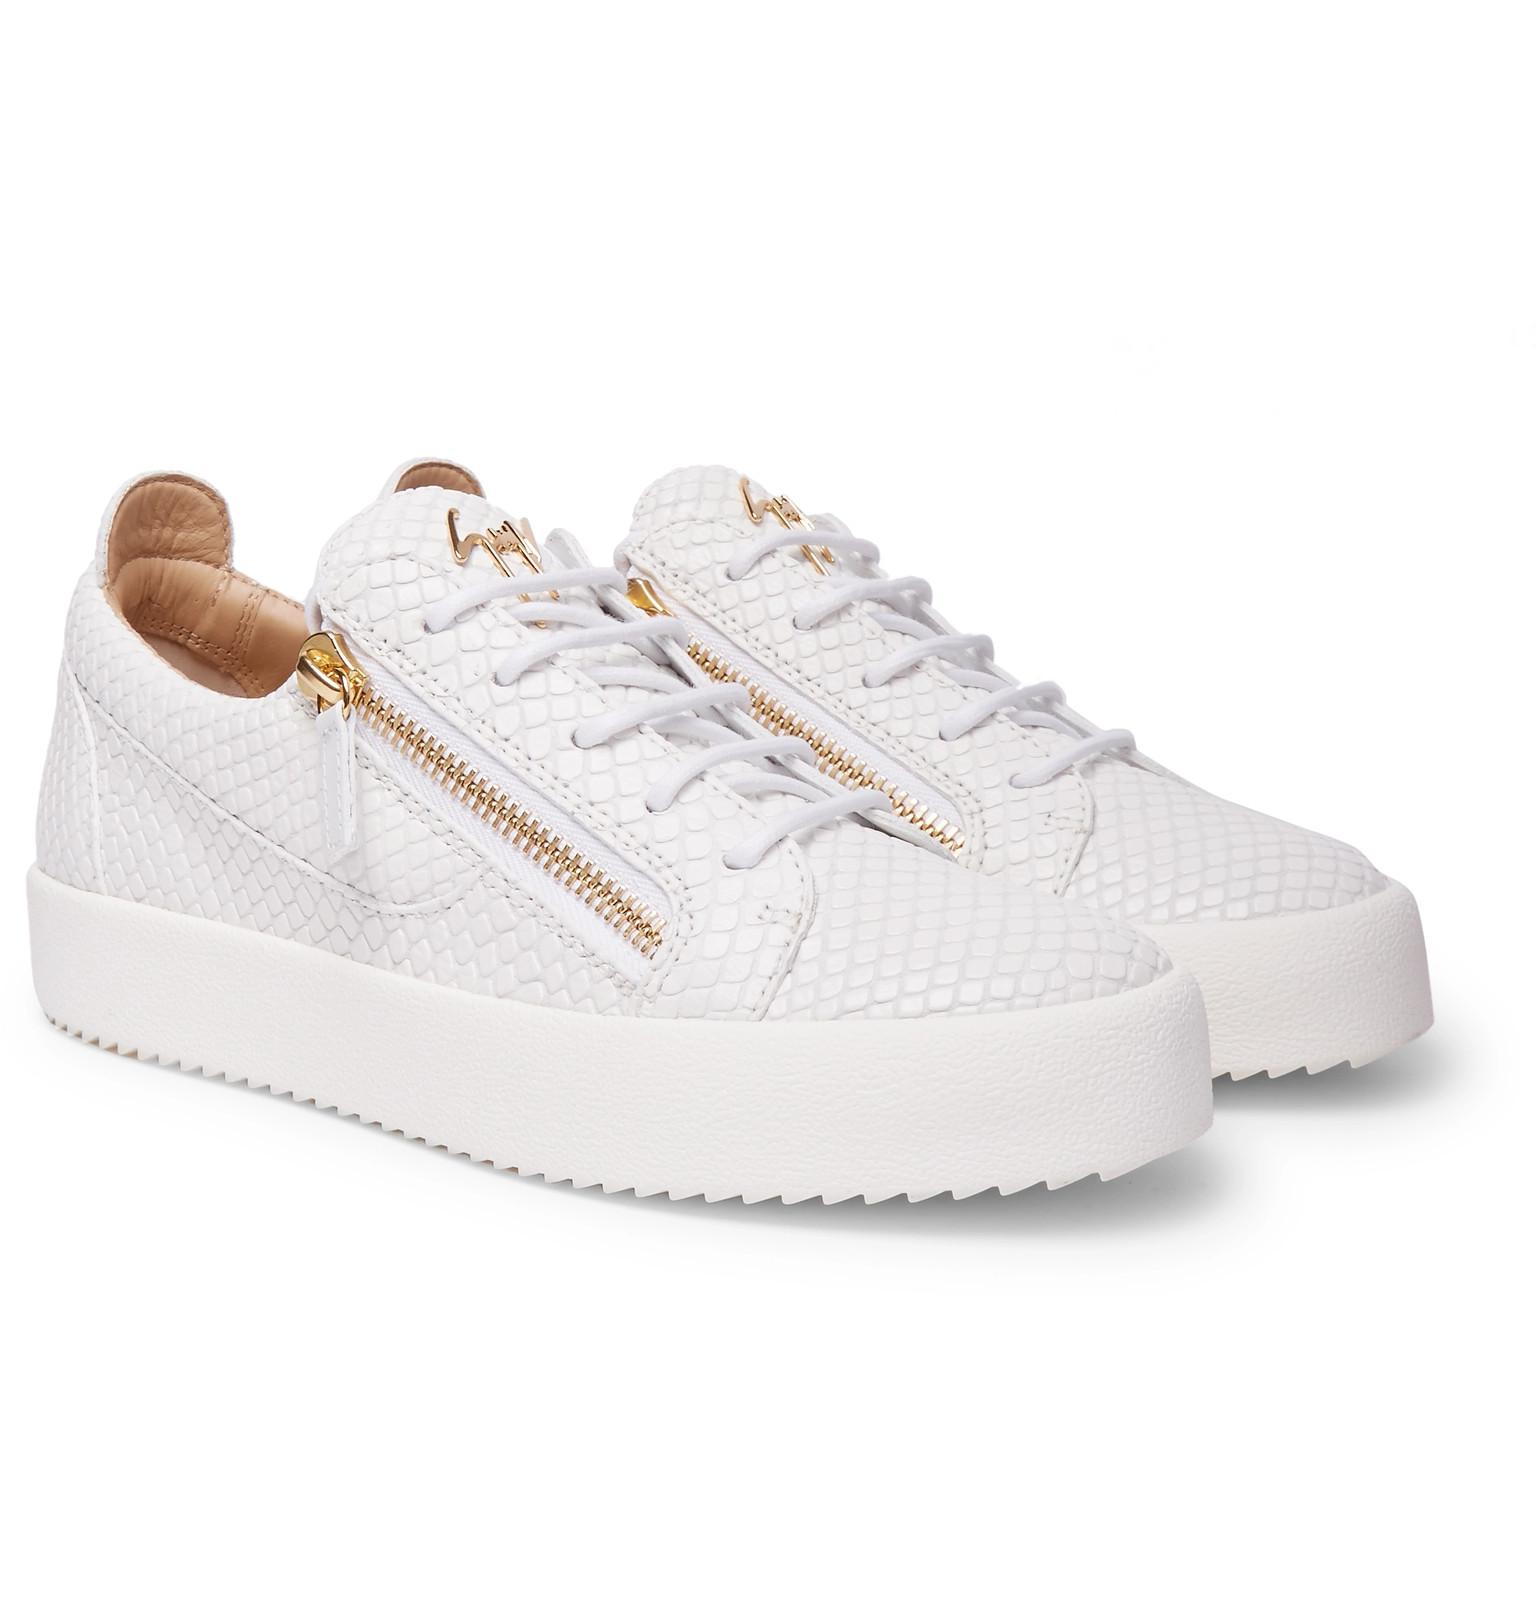 Giuseppe Zanotti Logoball Snake-Effect Leather Sneakers sale with paypal clearance wholesale price prices sale online mpnP7